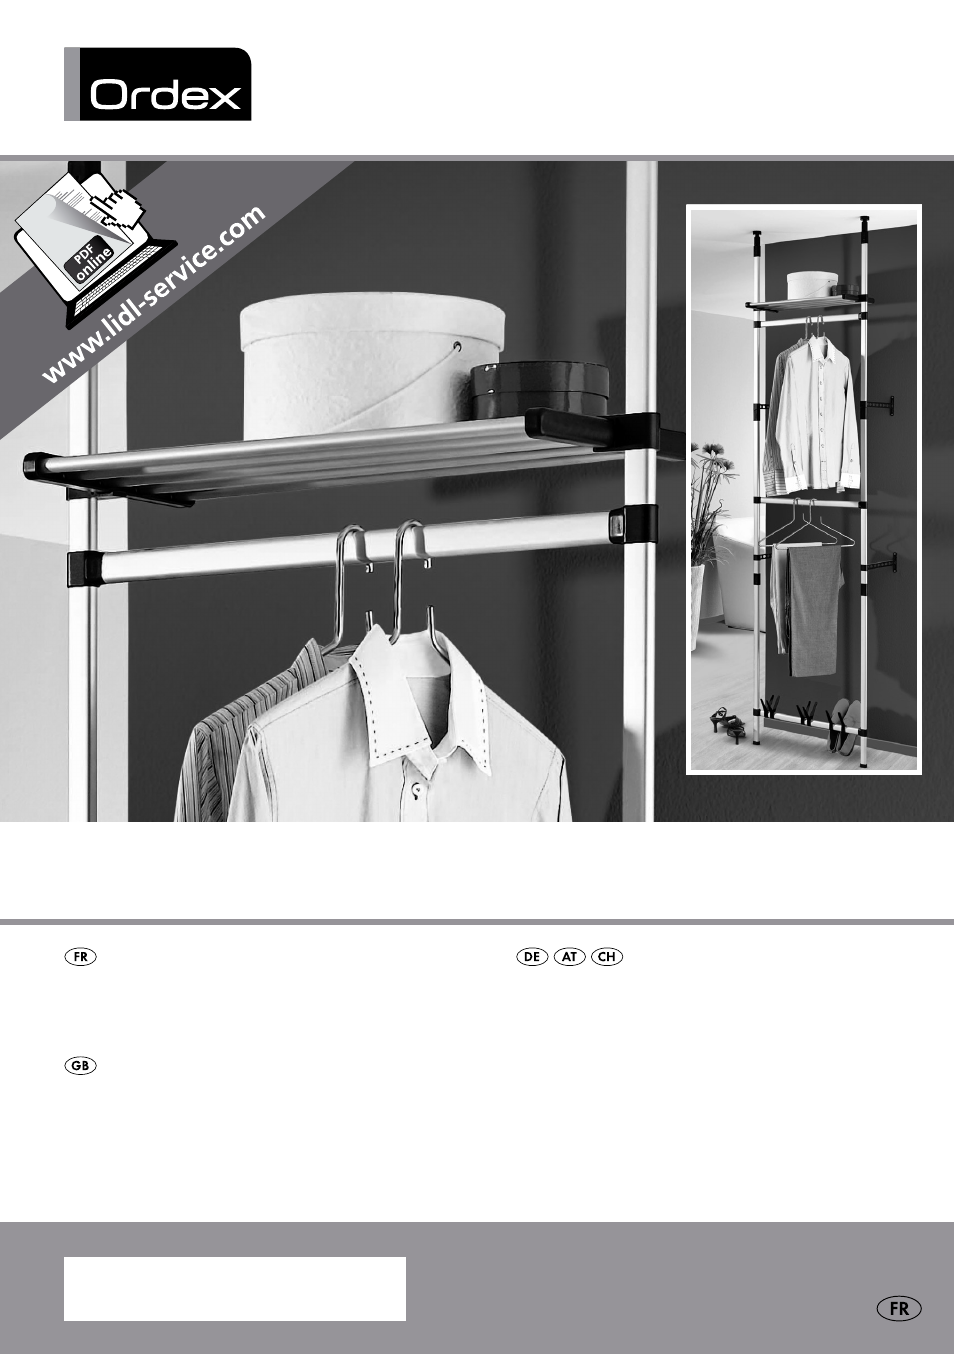 Ordex Telescopic Wardrobe System User Manual 15 Pages